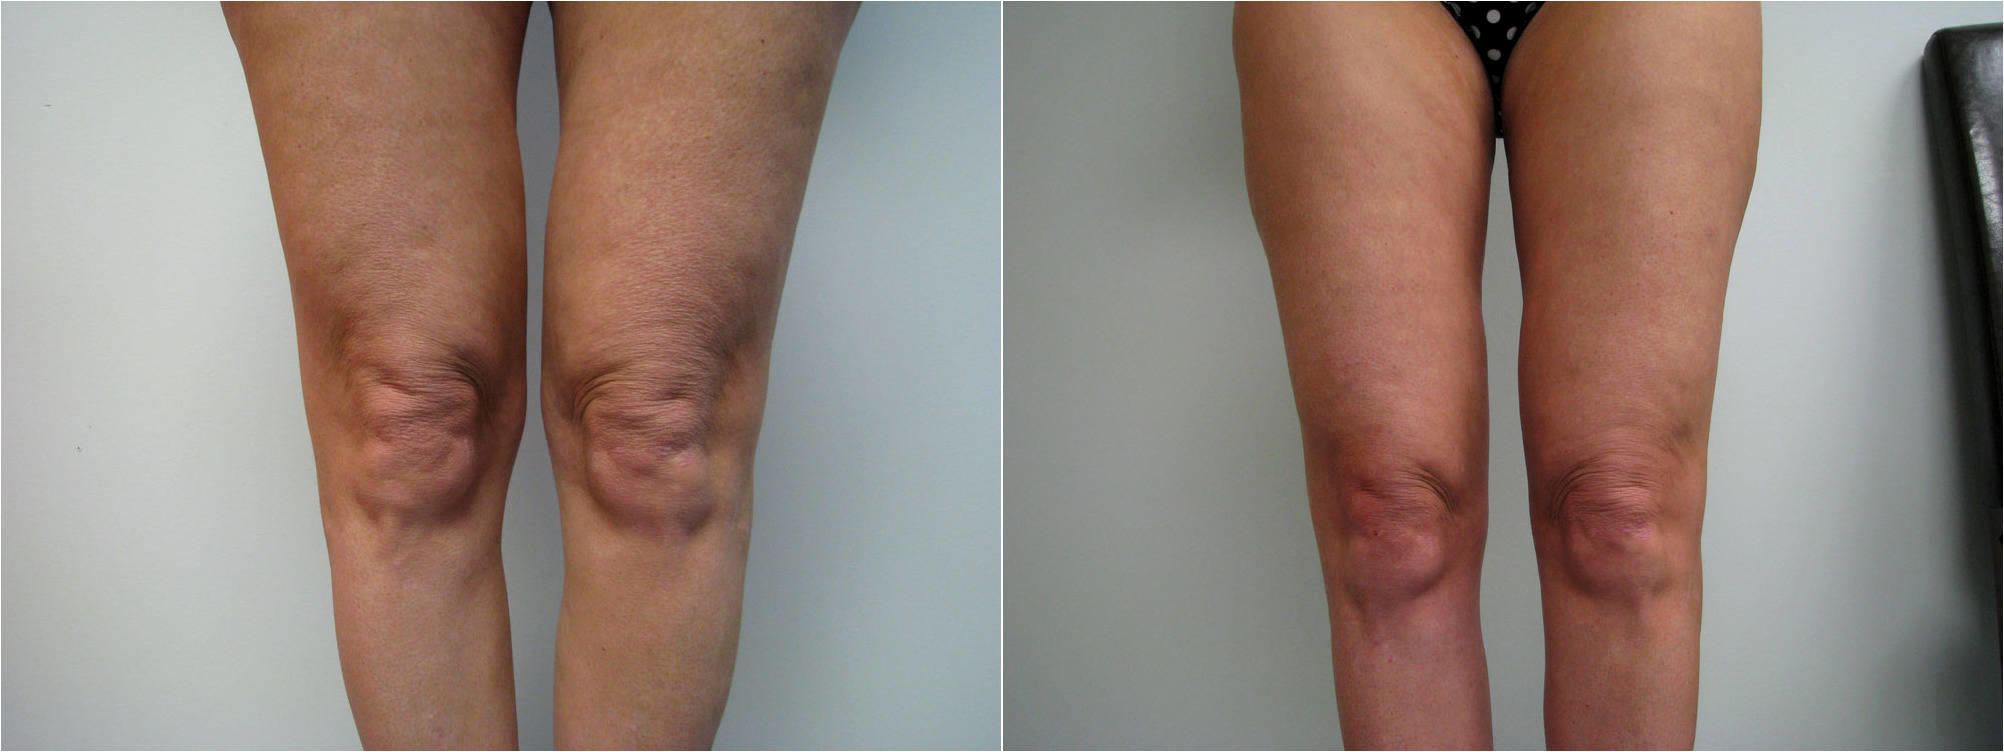 Smartlipo Performed On Inner Knees By Dr. Earl Bryant II, DO, Newtown  Square, PA (2) » Liposuction: Info, Prices, Photos, Reviews, Q&A